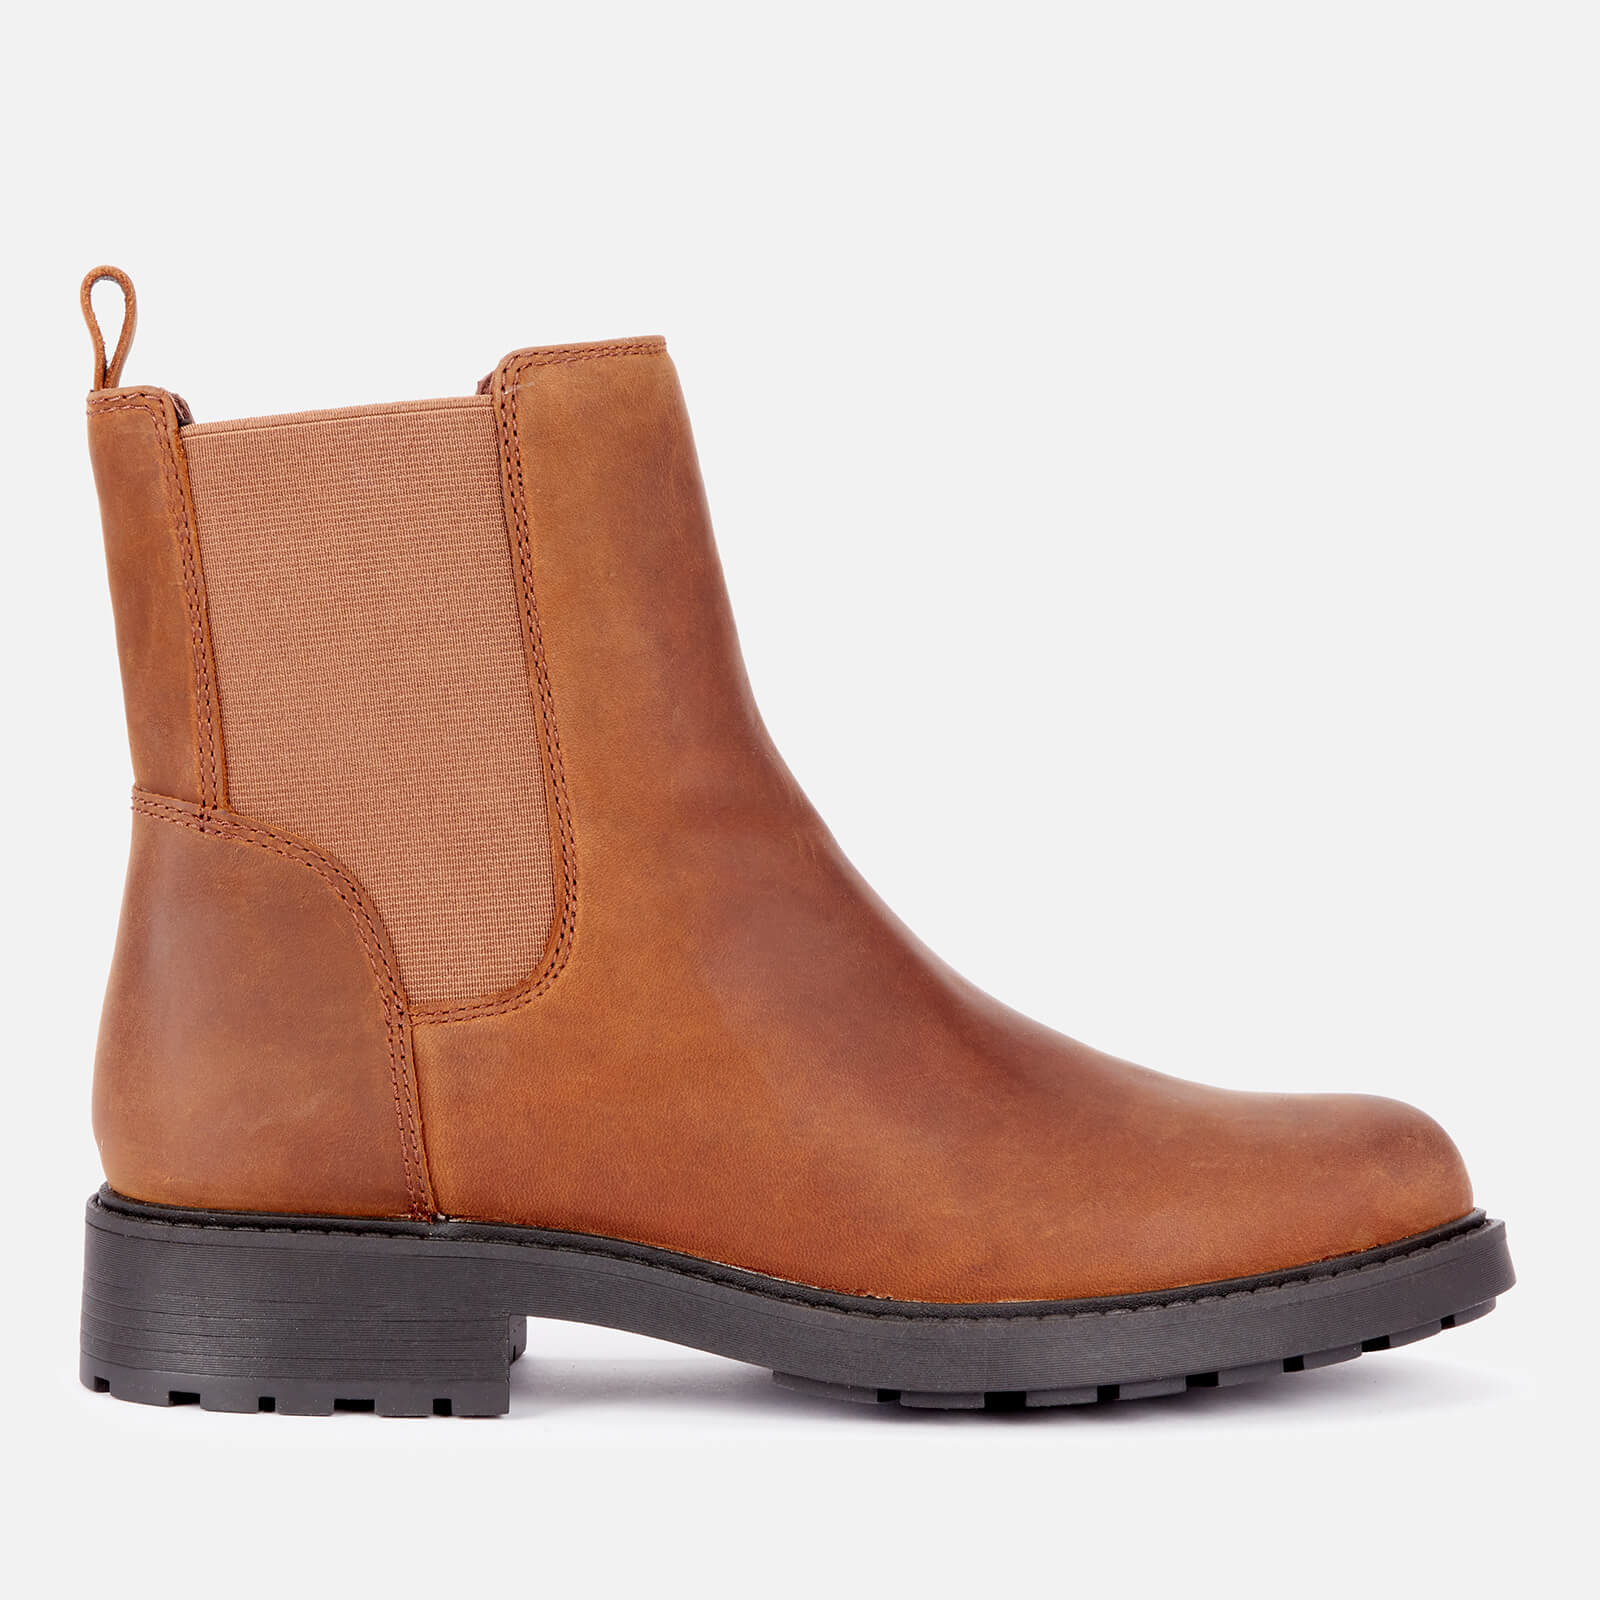 Clarks Women's Orinoco 2 Top Leather Chelsea Boots - Brown Snuff - UK 3